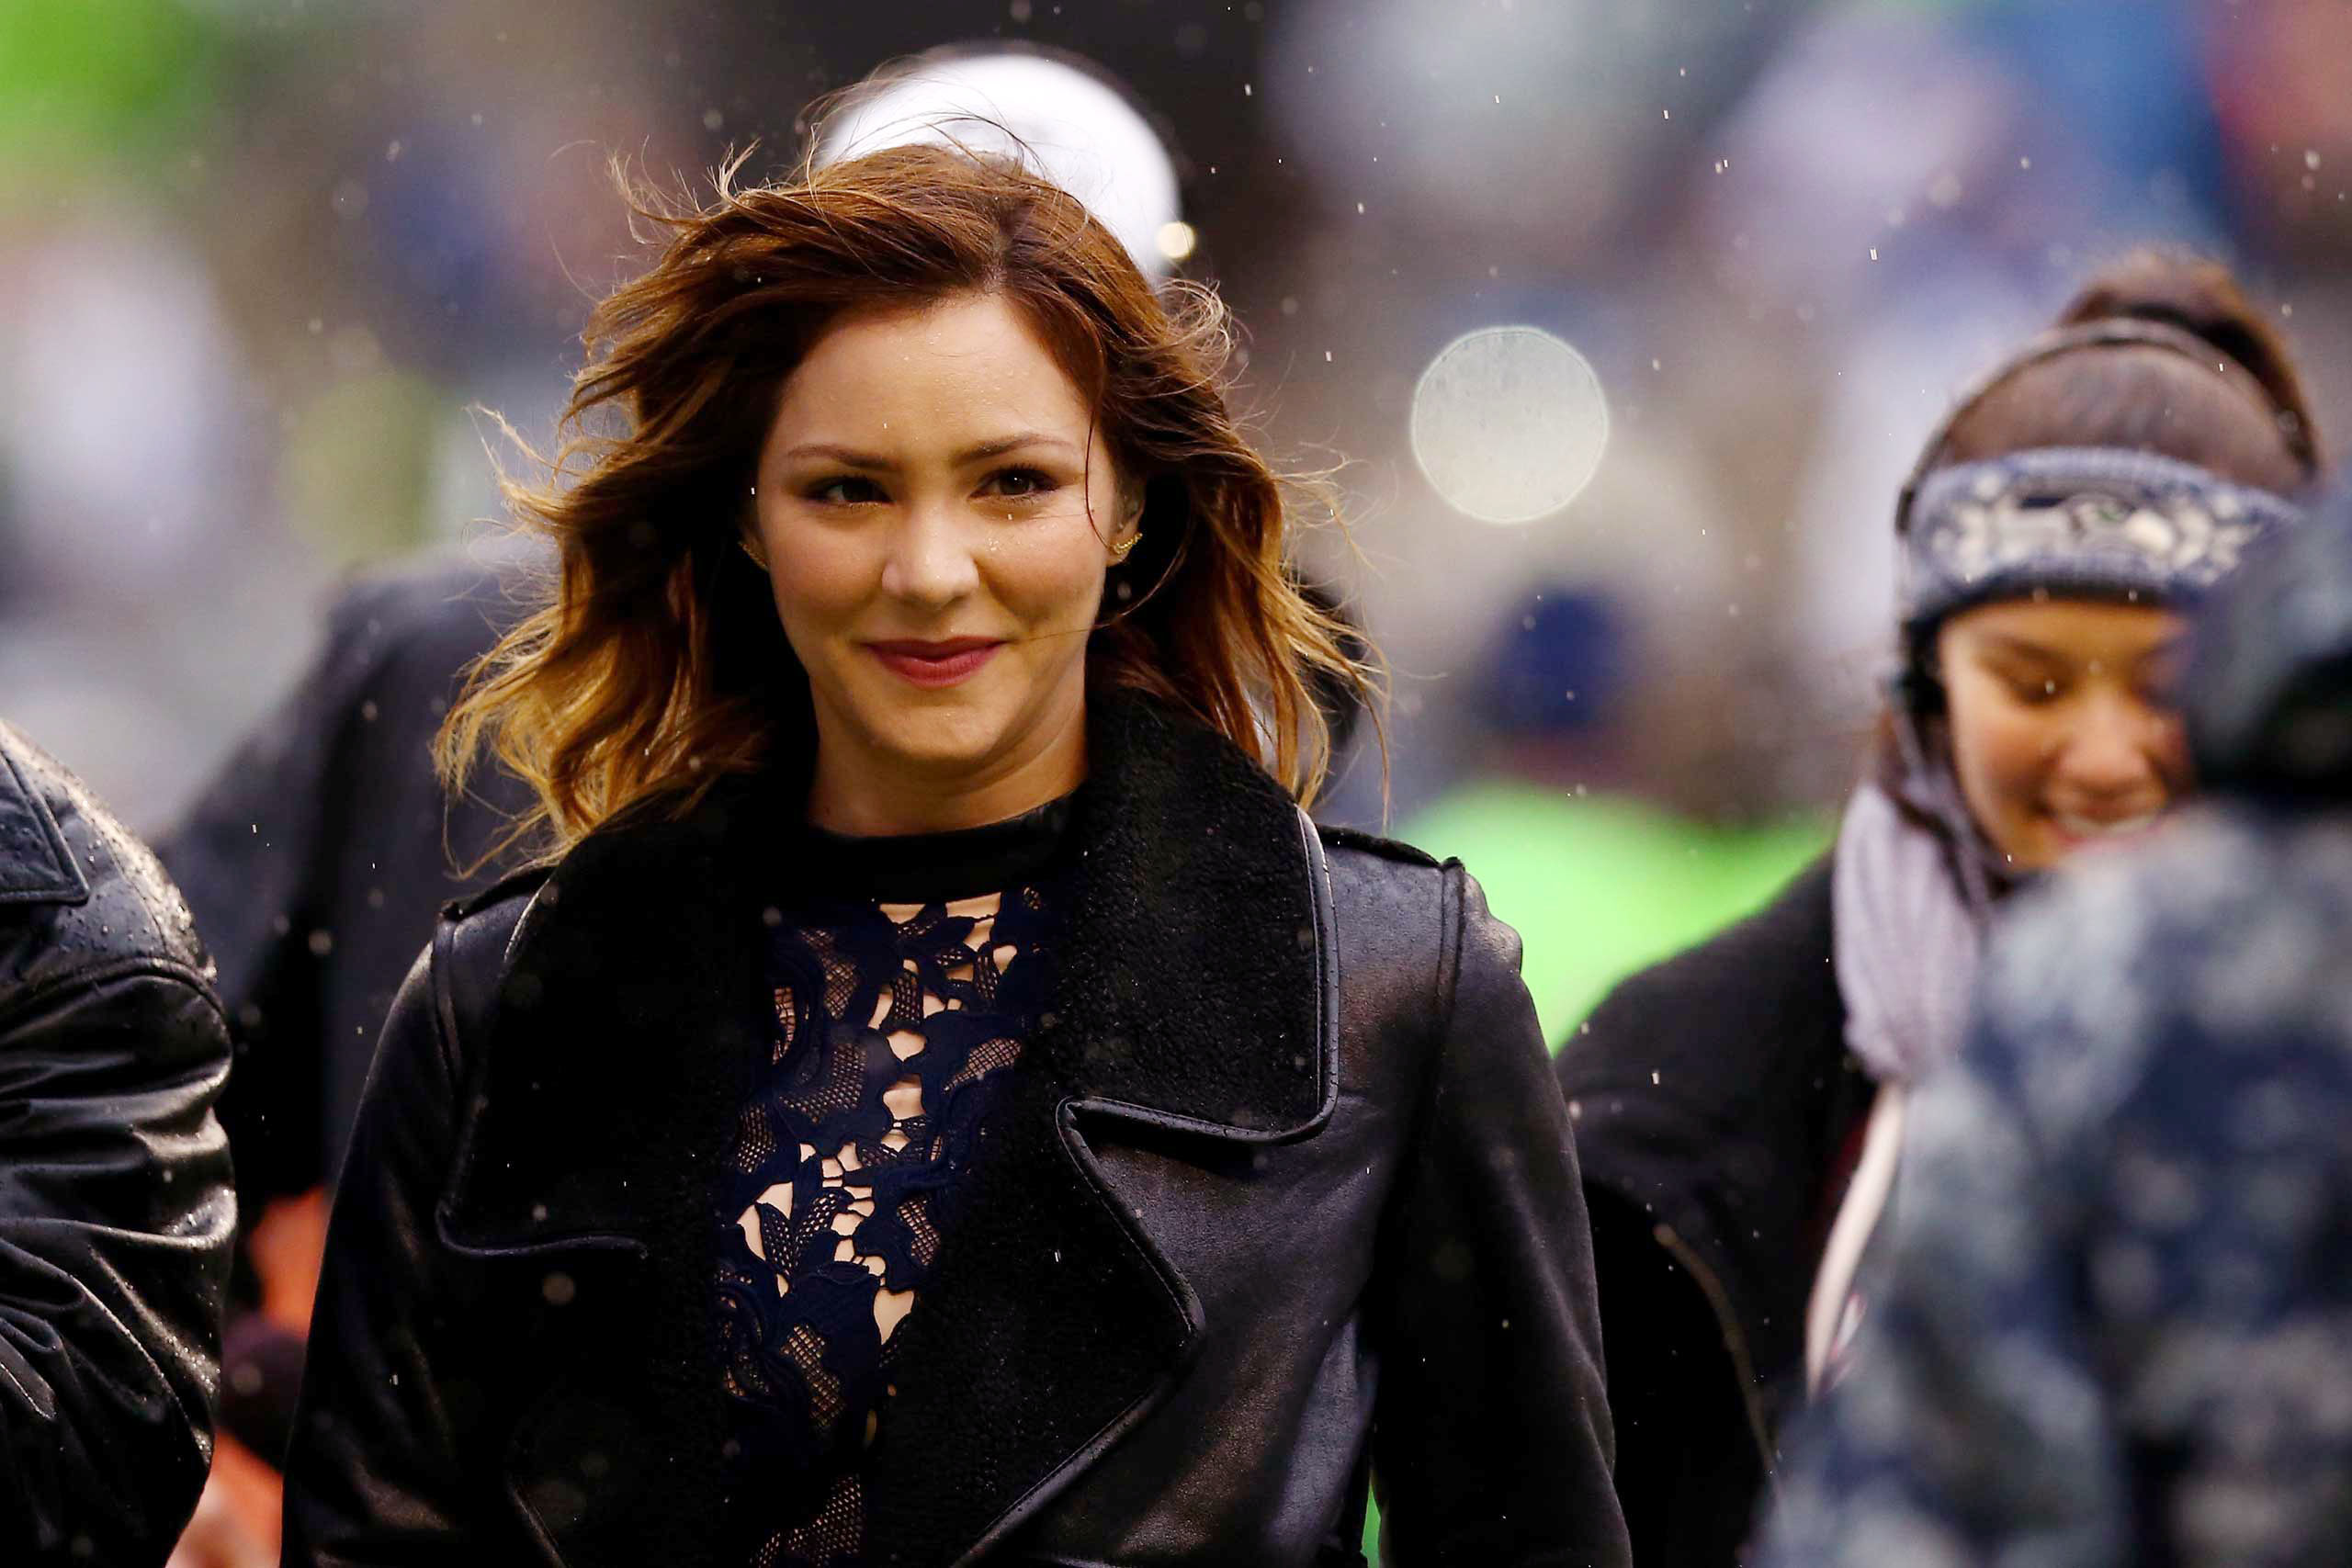 <b>Katharine McPhee</b>, season 5 runner-up, walks out on the field to sing the national anthem before the 2015 NFC Championship game between the Seattle Seahawks and the Green Bay Packers at CenturyLink Field in Seattle on Jan. 18, 2015.